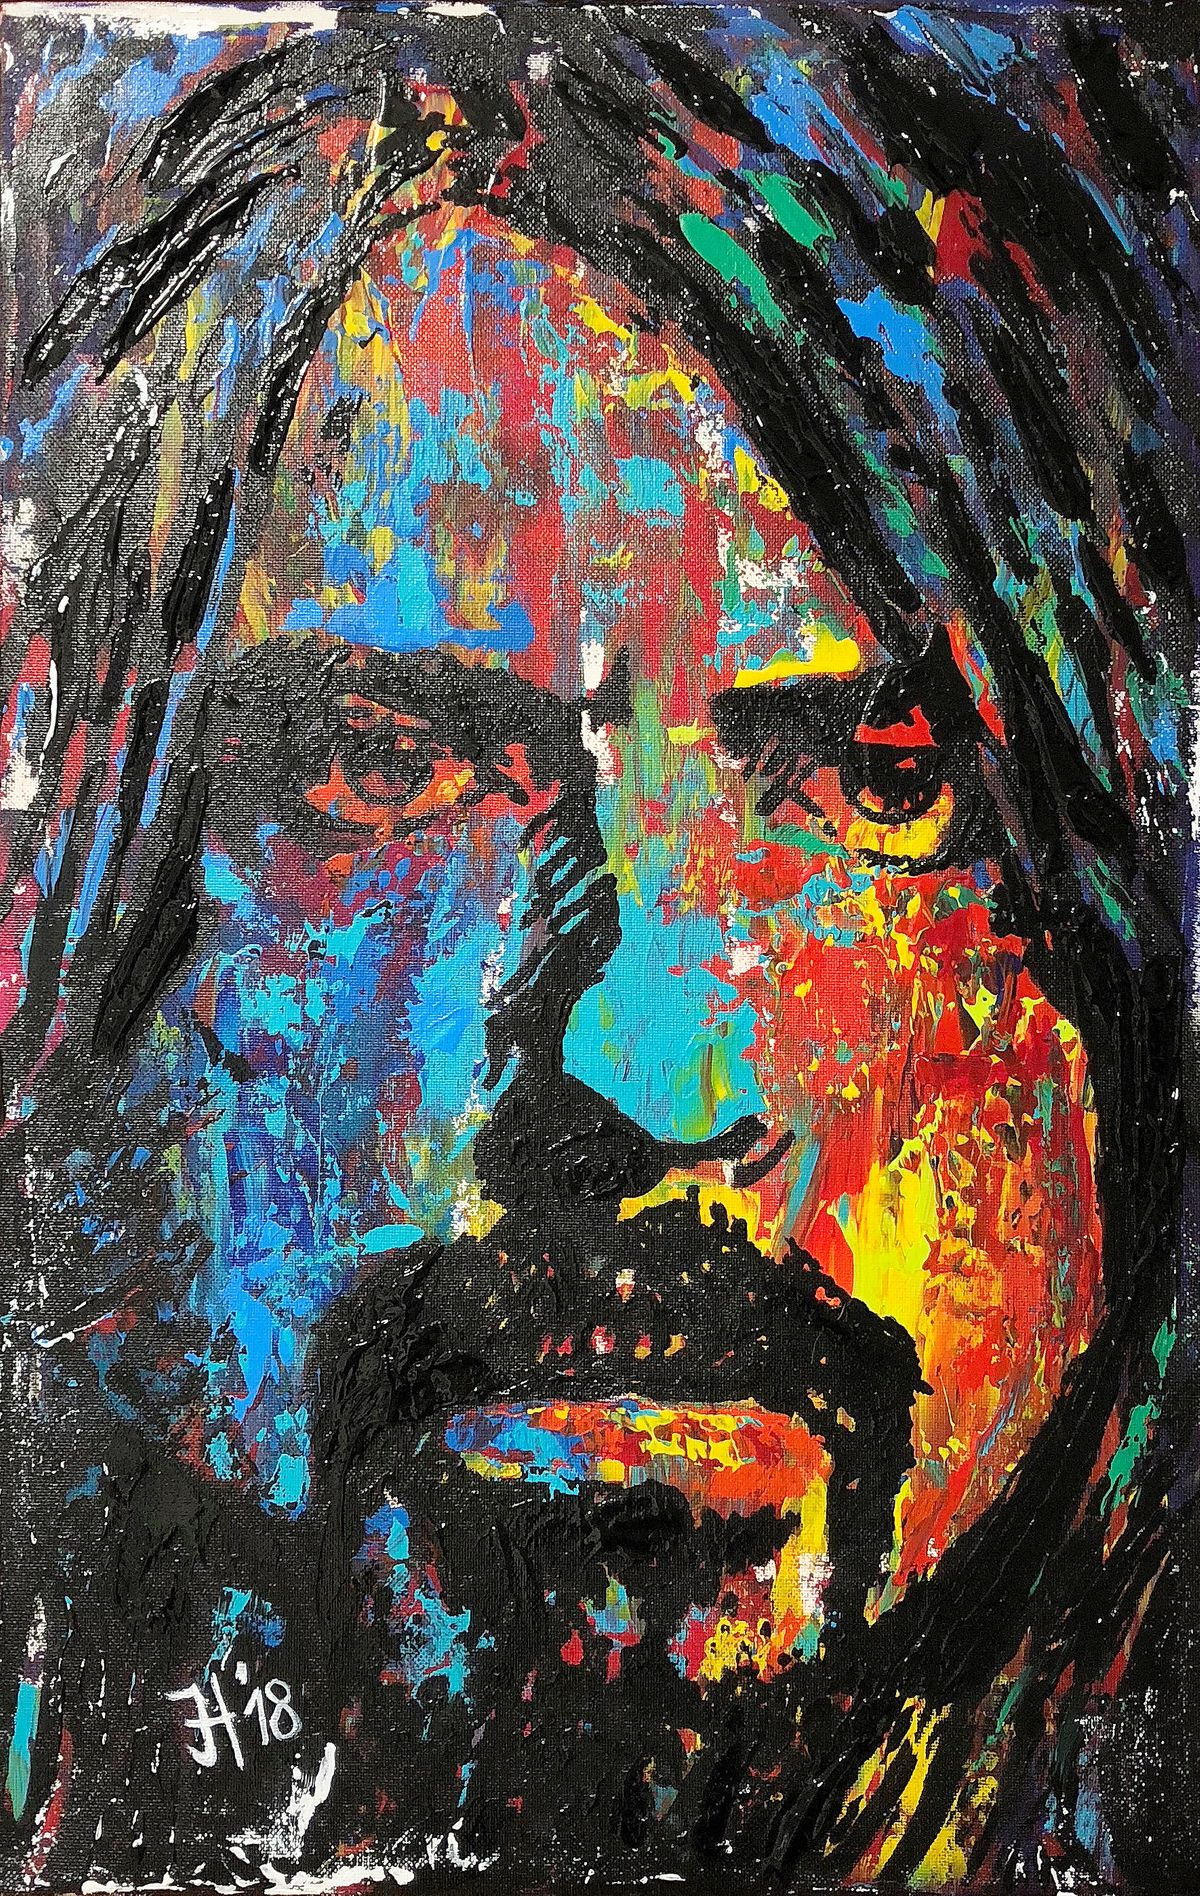 Dave Grohl (Foo Fighters) - 30 x 60 cm - © 2018